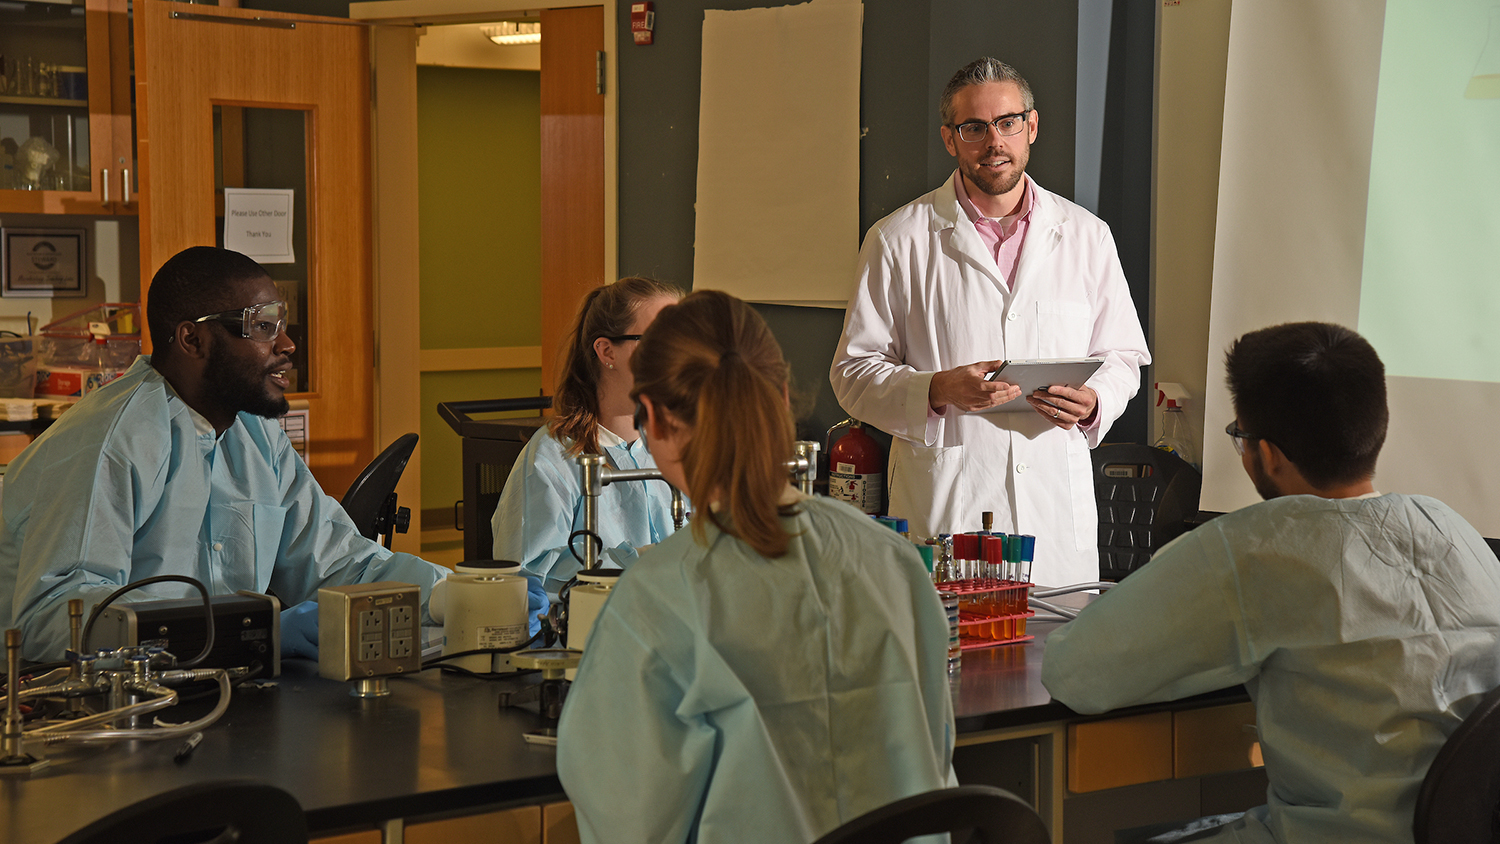 Microbiology Undergraduate Program faculty member Mike Taveirne leads a lab discussion in Thomas Hall.